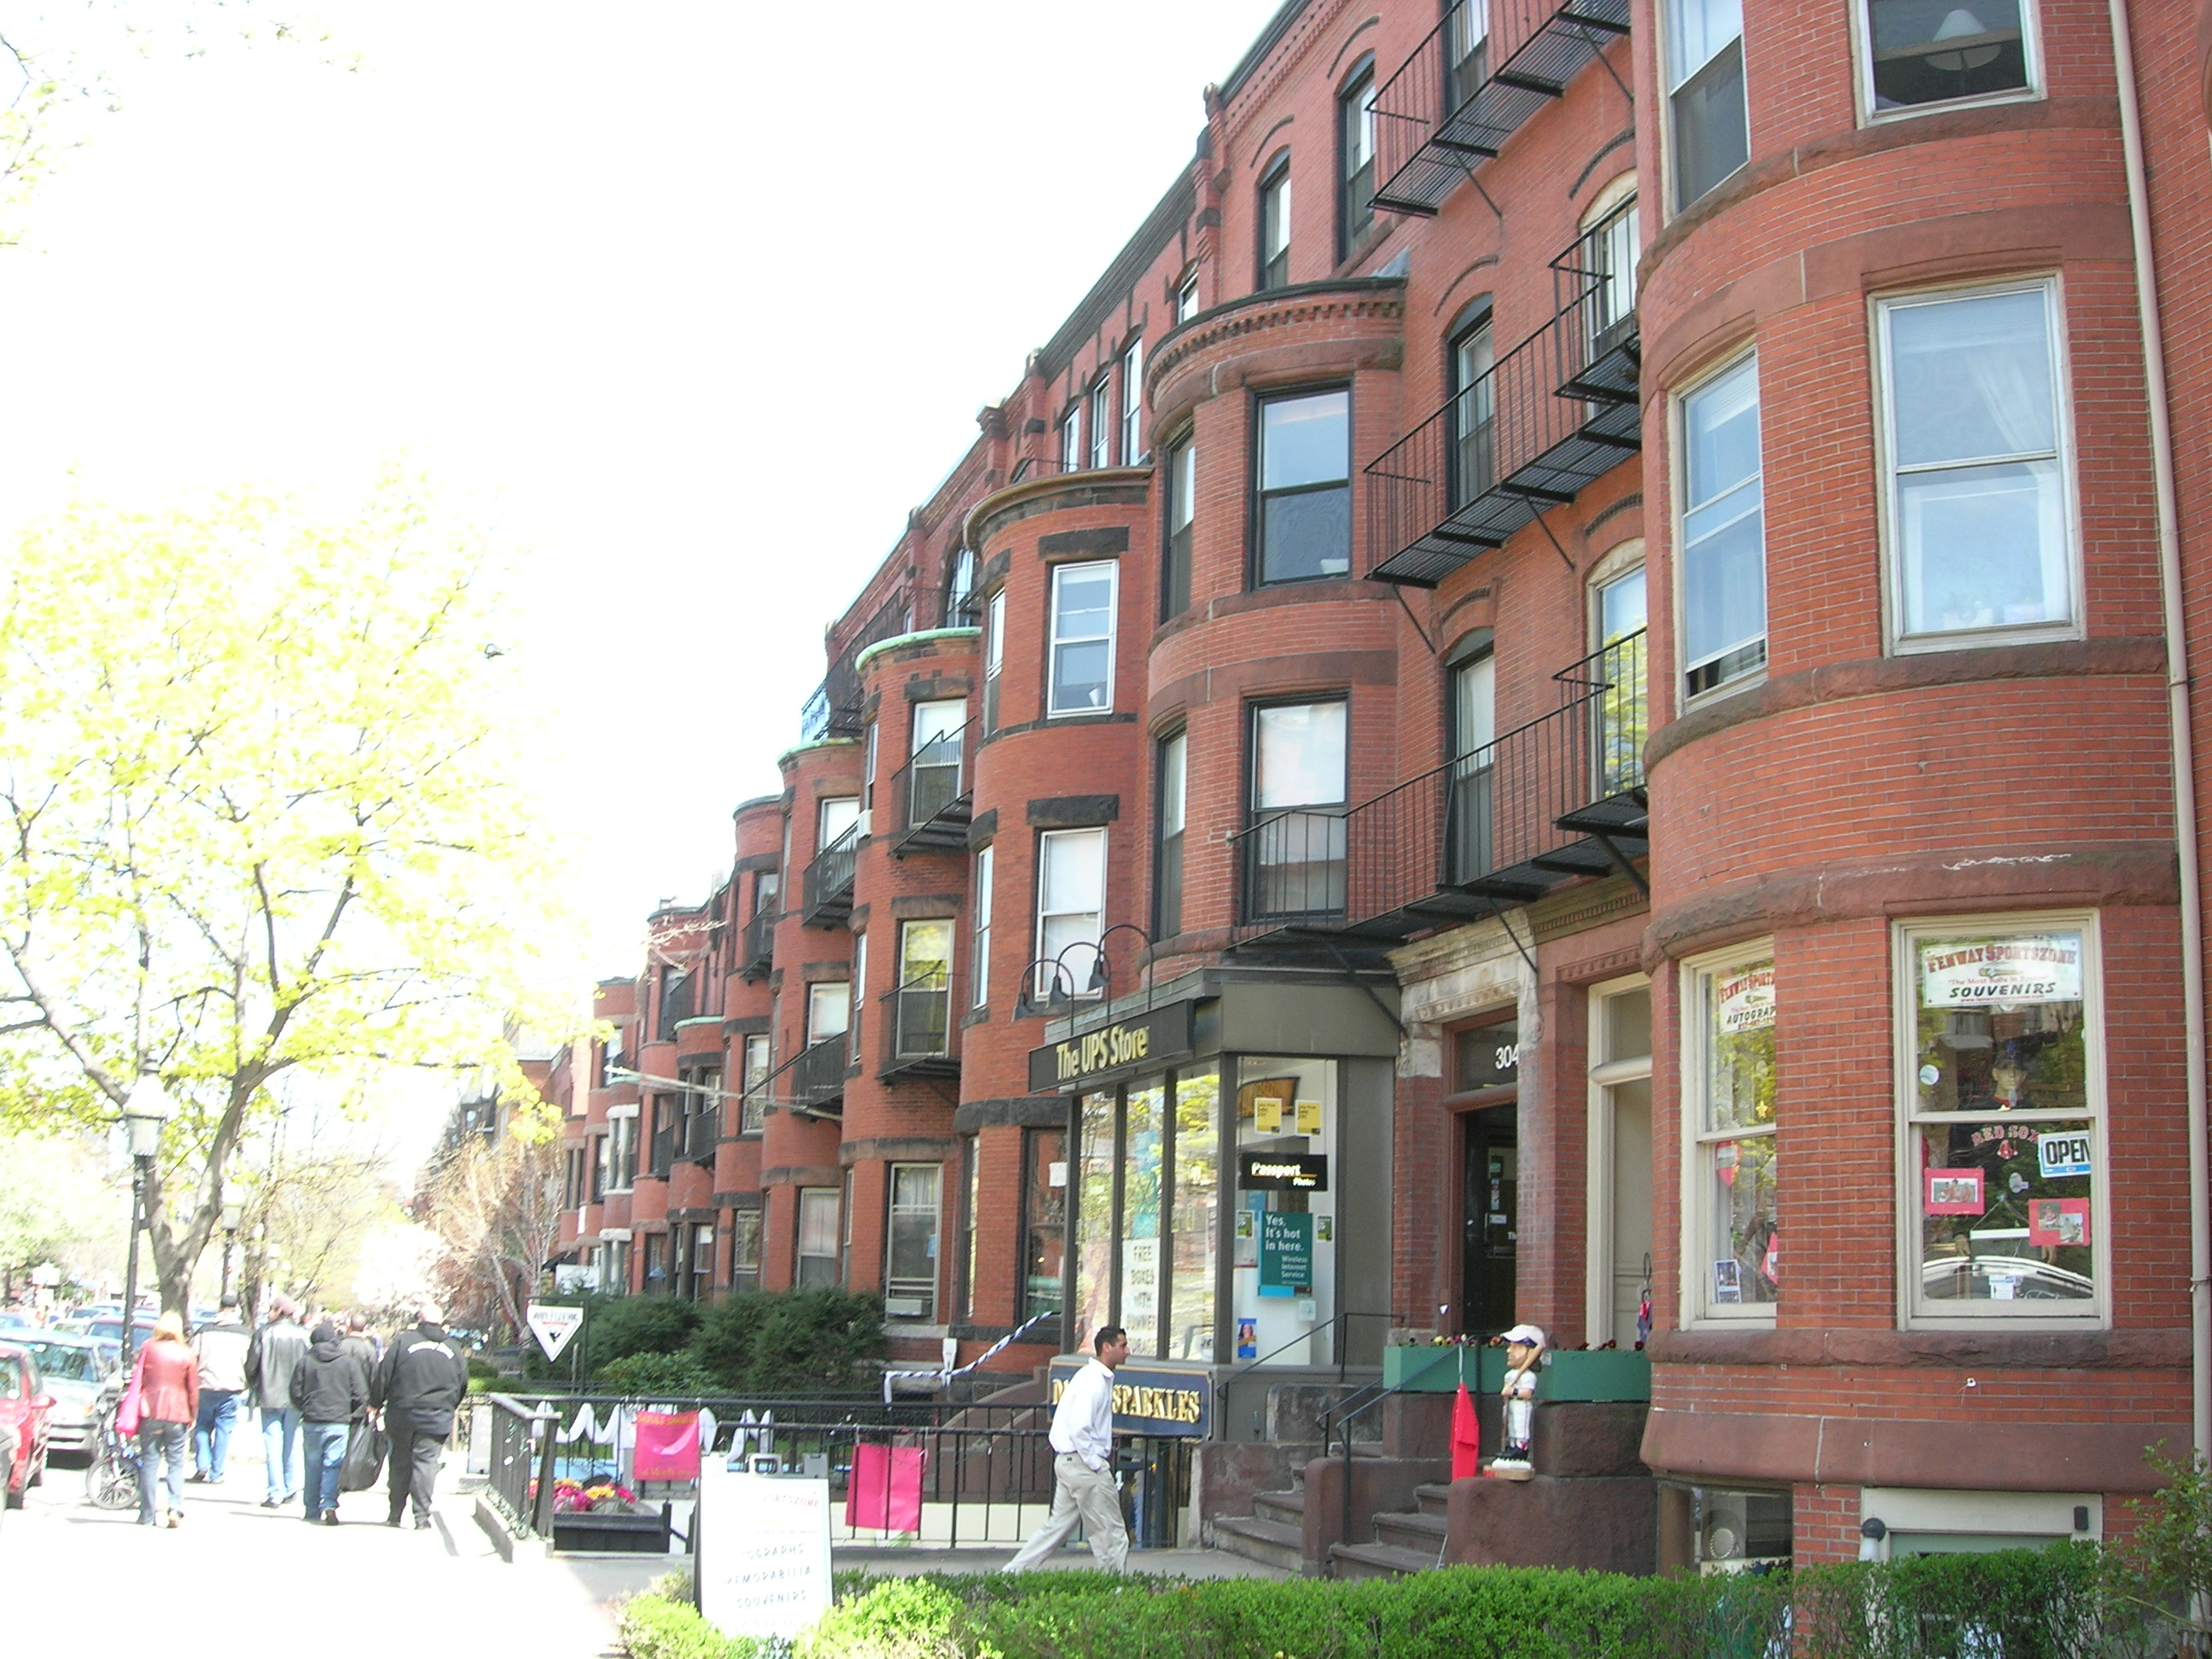 Part 1 - Unofficial Tourist Guide: Boston's Back Bay ...